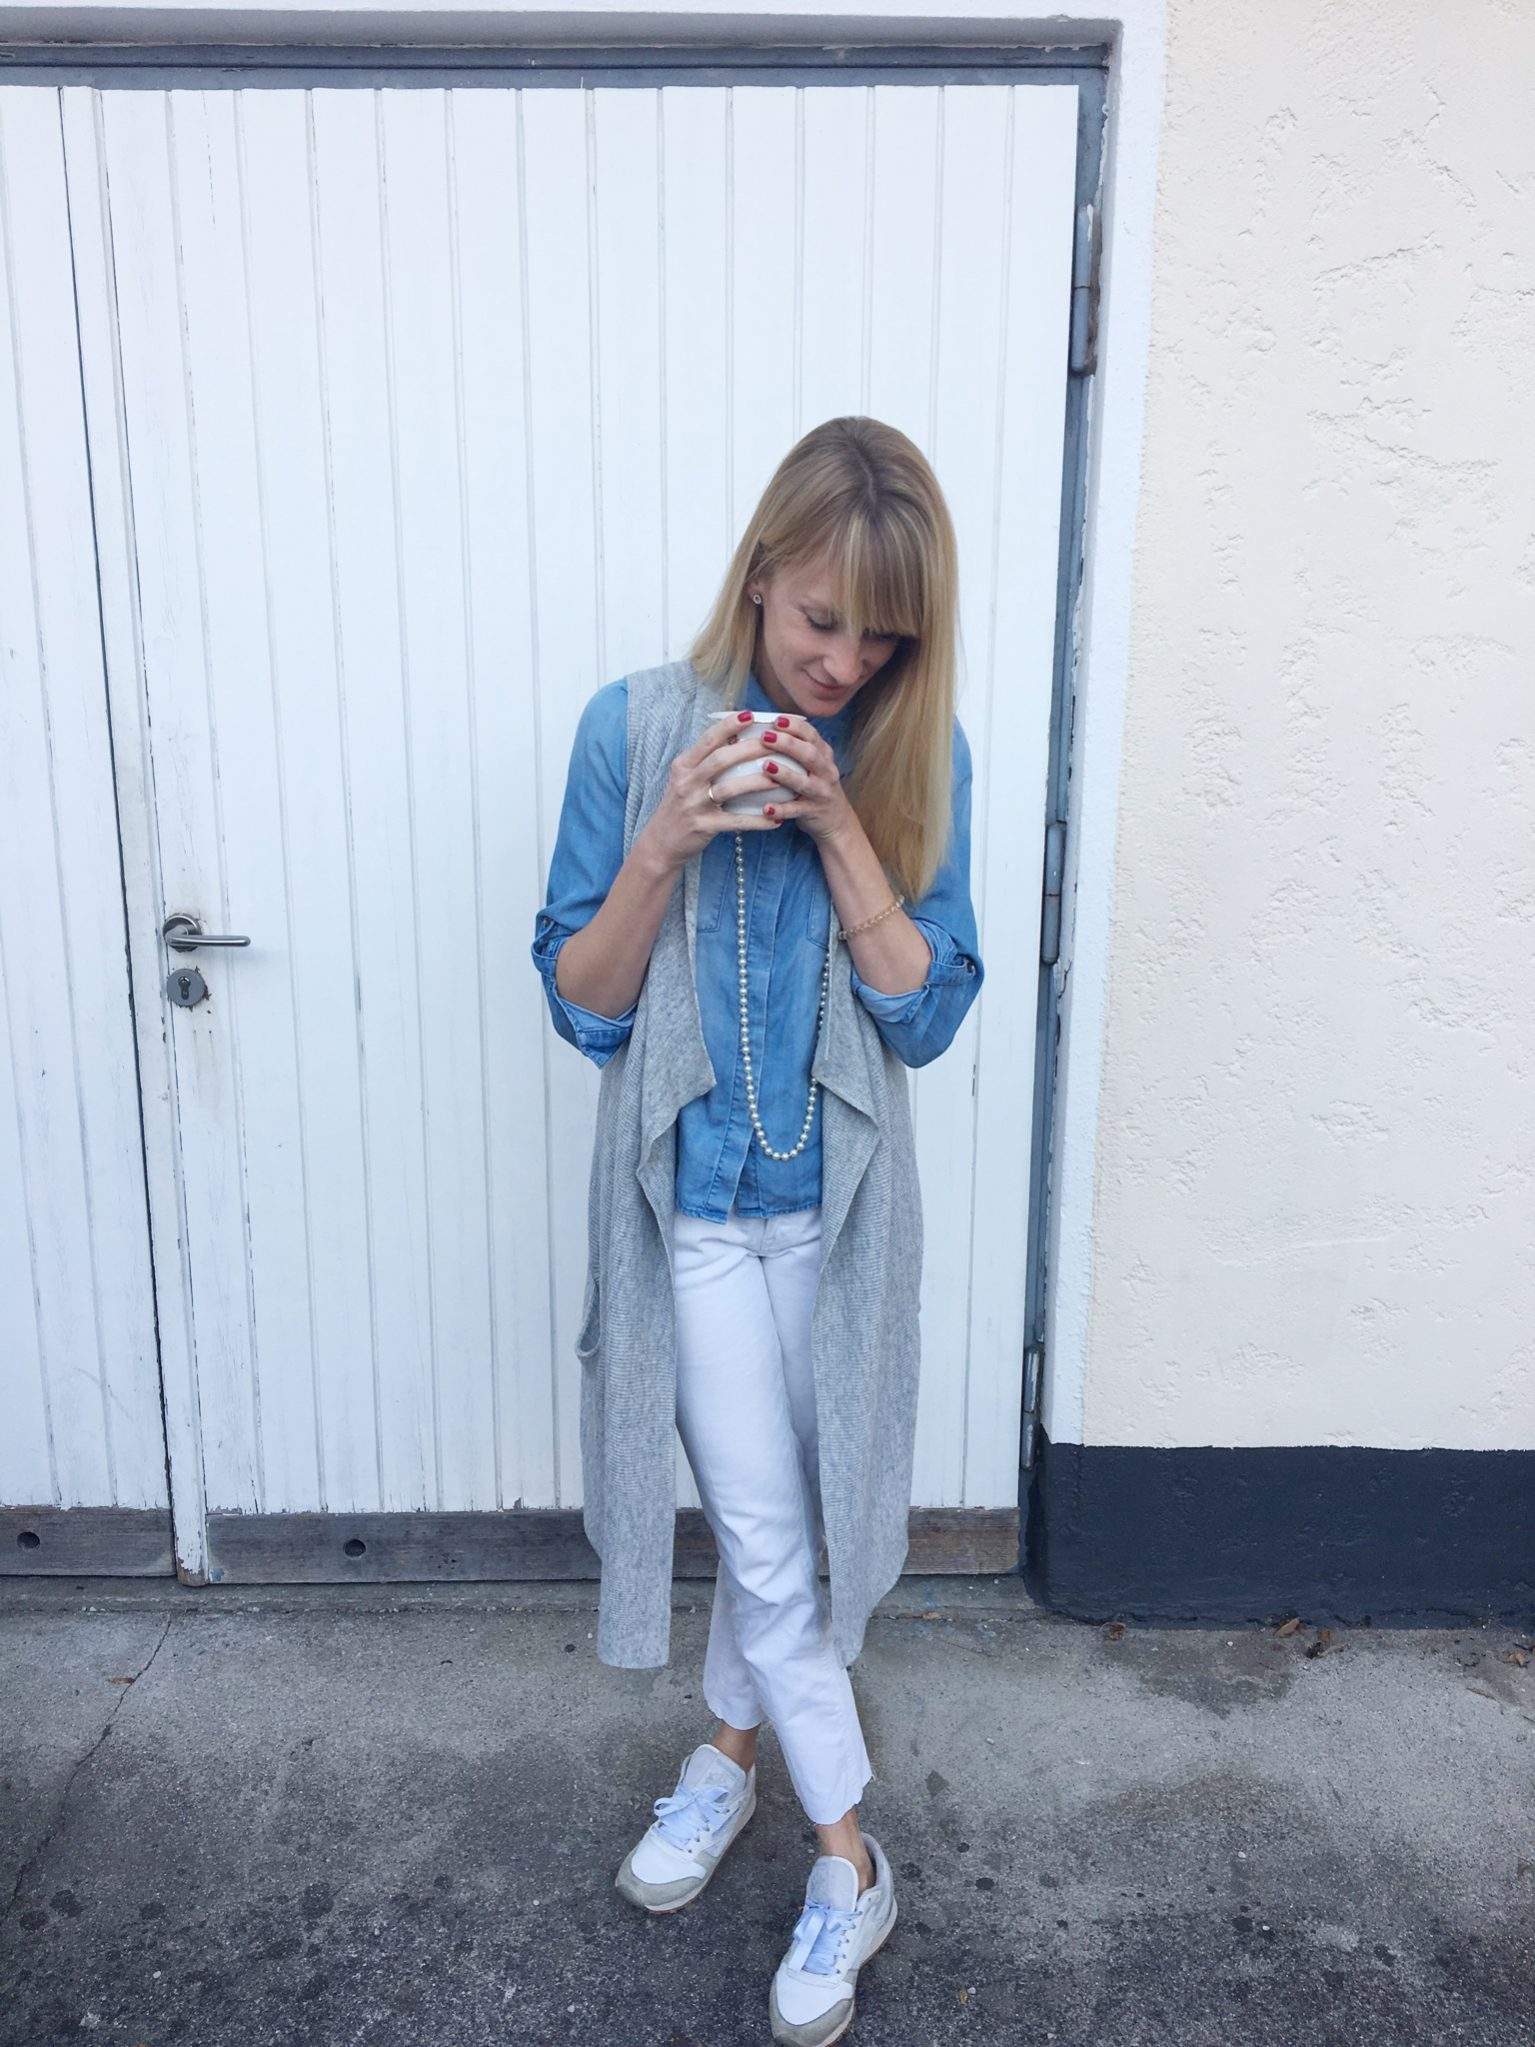 weiße Jeans, Jeanslook, Outfitinspiration, Outfitpost, Perlenkette, Strickweste, Mamablog, Modeblog, Mama Mode Blog, Modemama, Streetetyle, ichheuteso